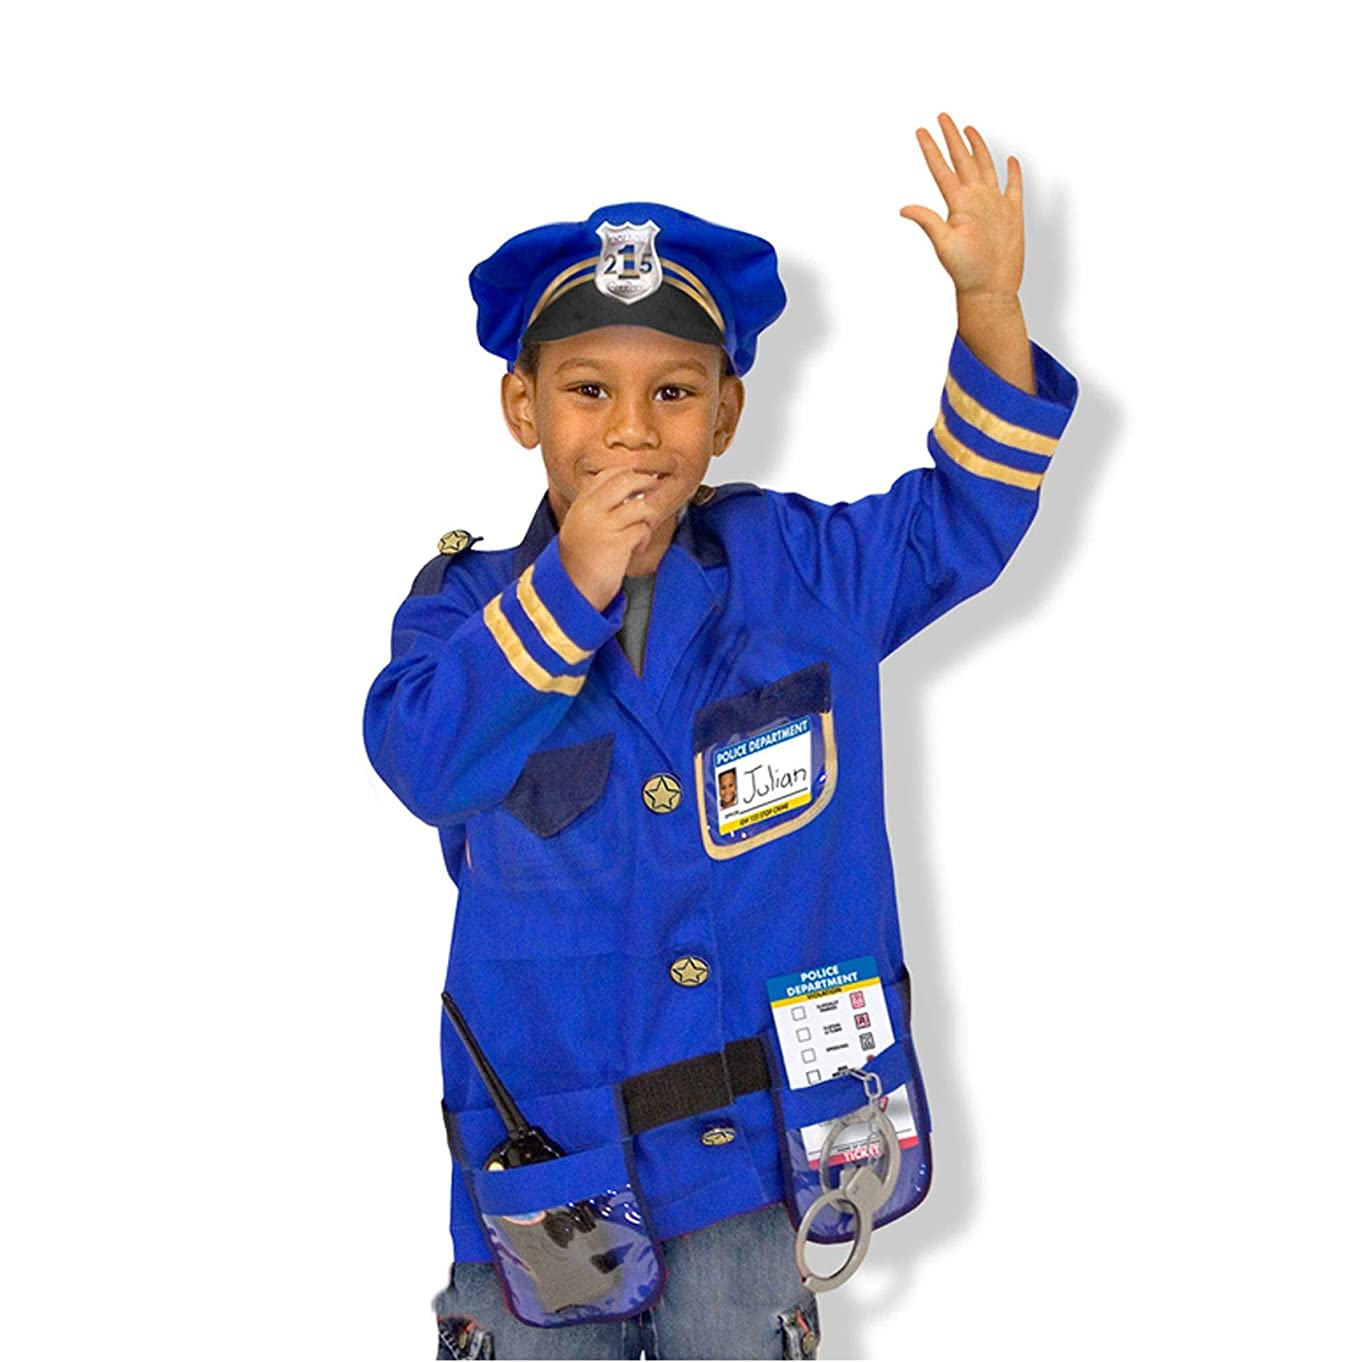 Melissa & Doug Police Officer Role-Play Costume Set (Pretend Play, Materials, Machine Washable, 17.5